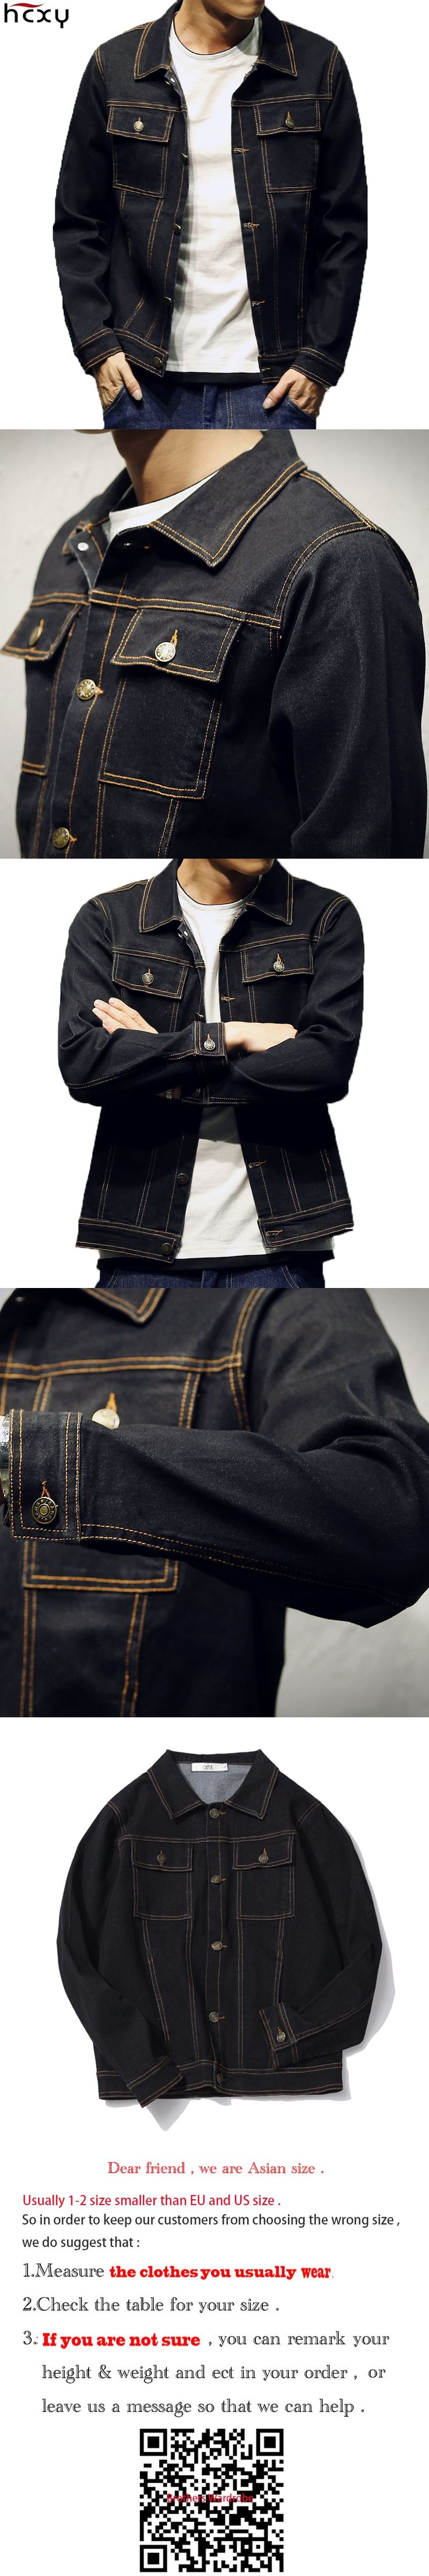 HCXY Brand Clothing 2017 Ripped Oversized Denim Jacket Men Men's Jeans Jackets Spring And Autumn Male Coat Ancient Straight